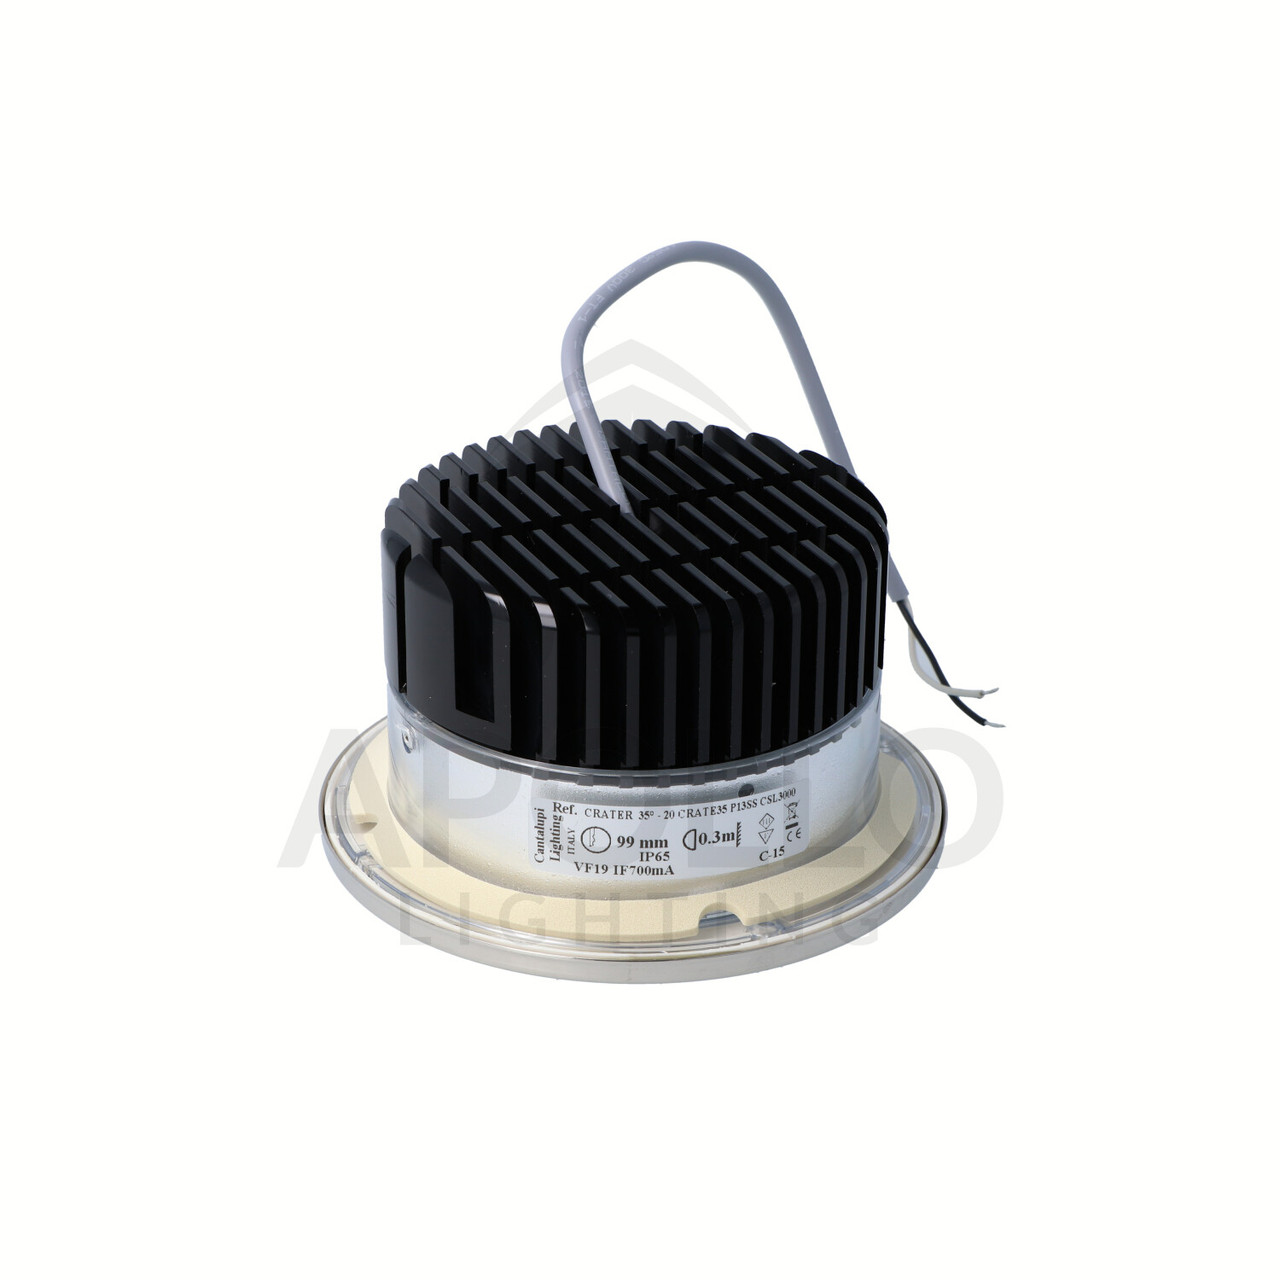 CRATER DOWNLIGHT STAINLESS STEEL (D4-CRATE-L1330-35-SS-23-000P)